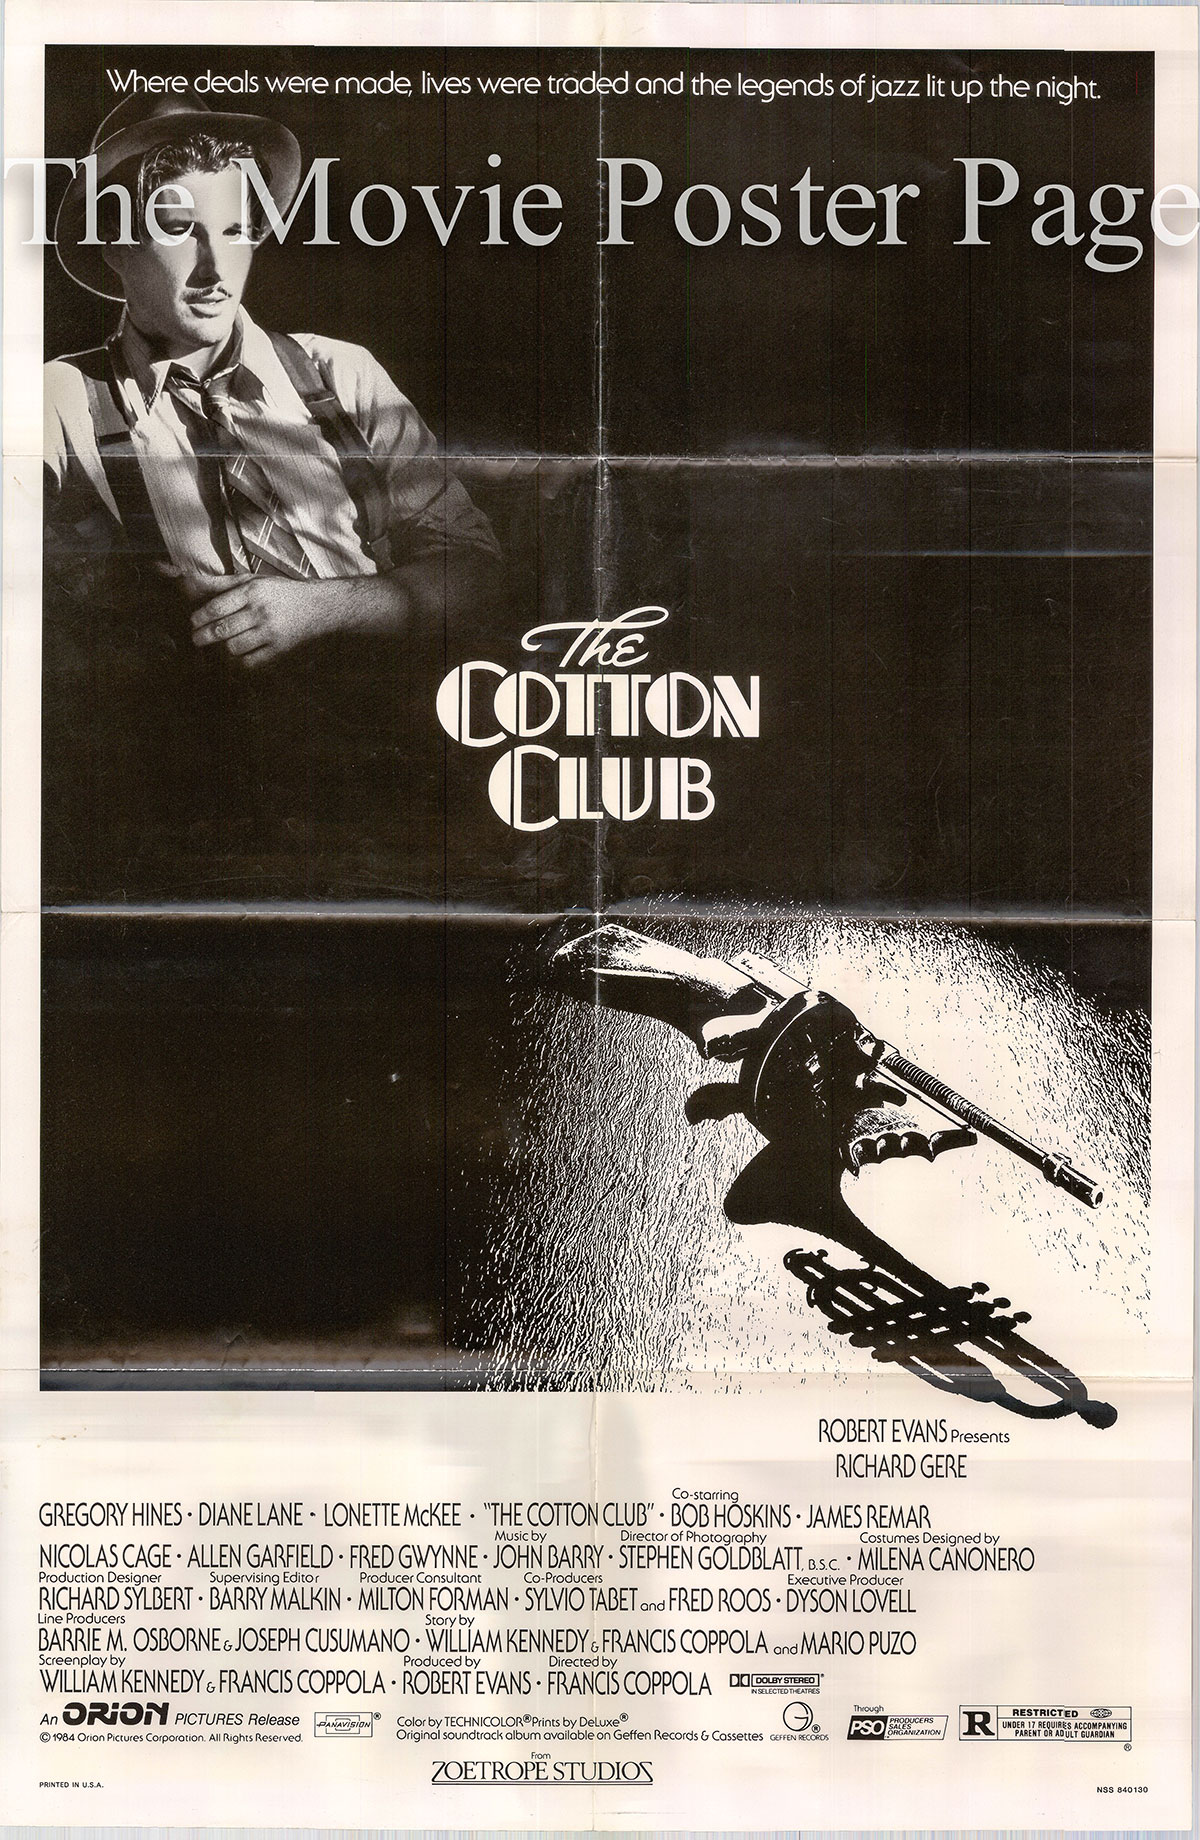 Pictured is a US one-sheet poster for the 1984 Francis Ford Coppola film The Cotton Club starring Richard Gere as Dixie Dwyer.